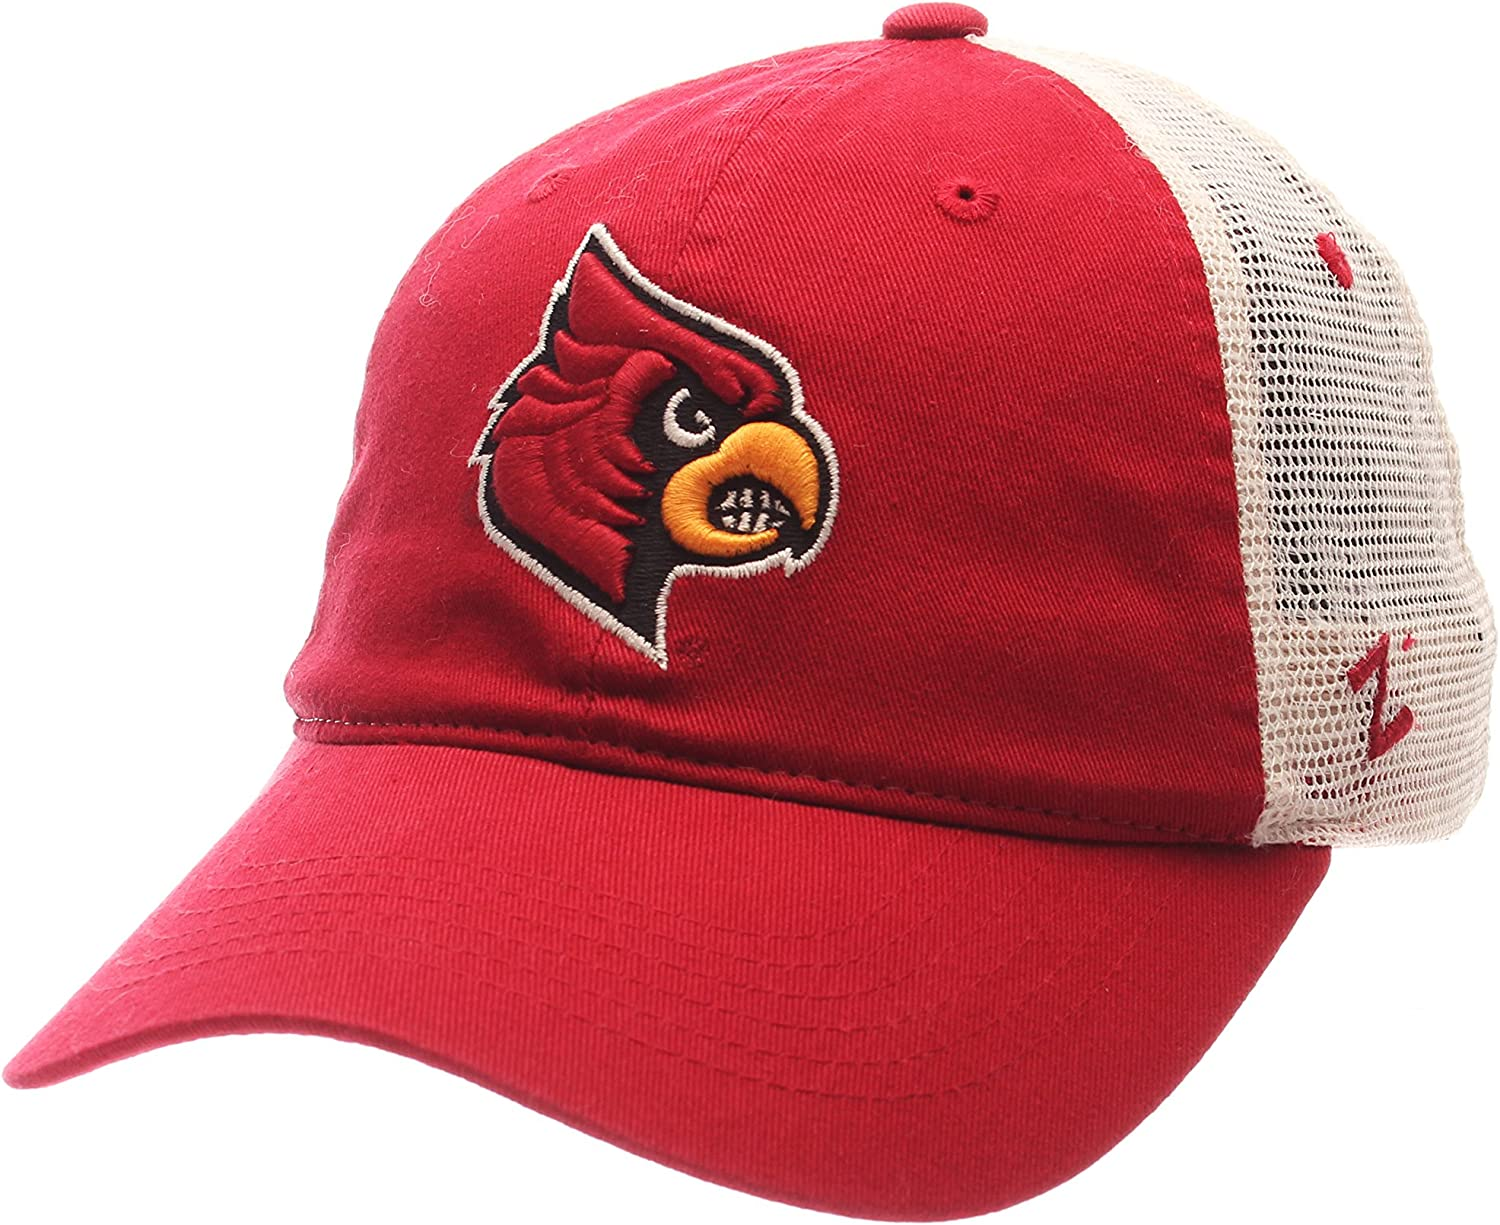 NCAA Zephyr Louisville Cardinals Mens University Relaxed Hat Adjustable Team Color//Stone